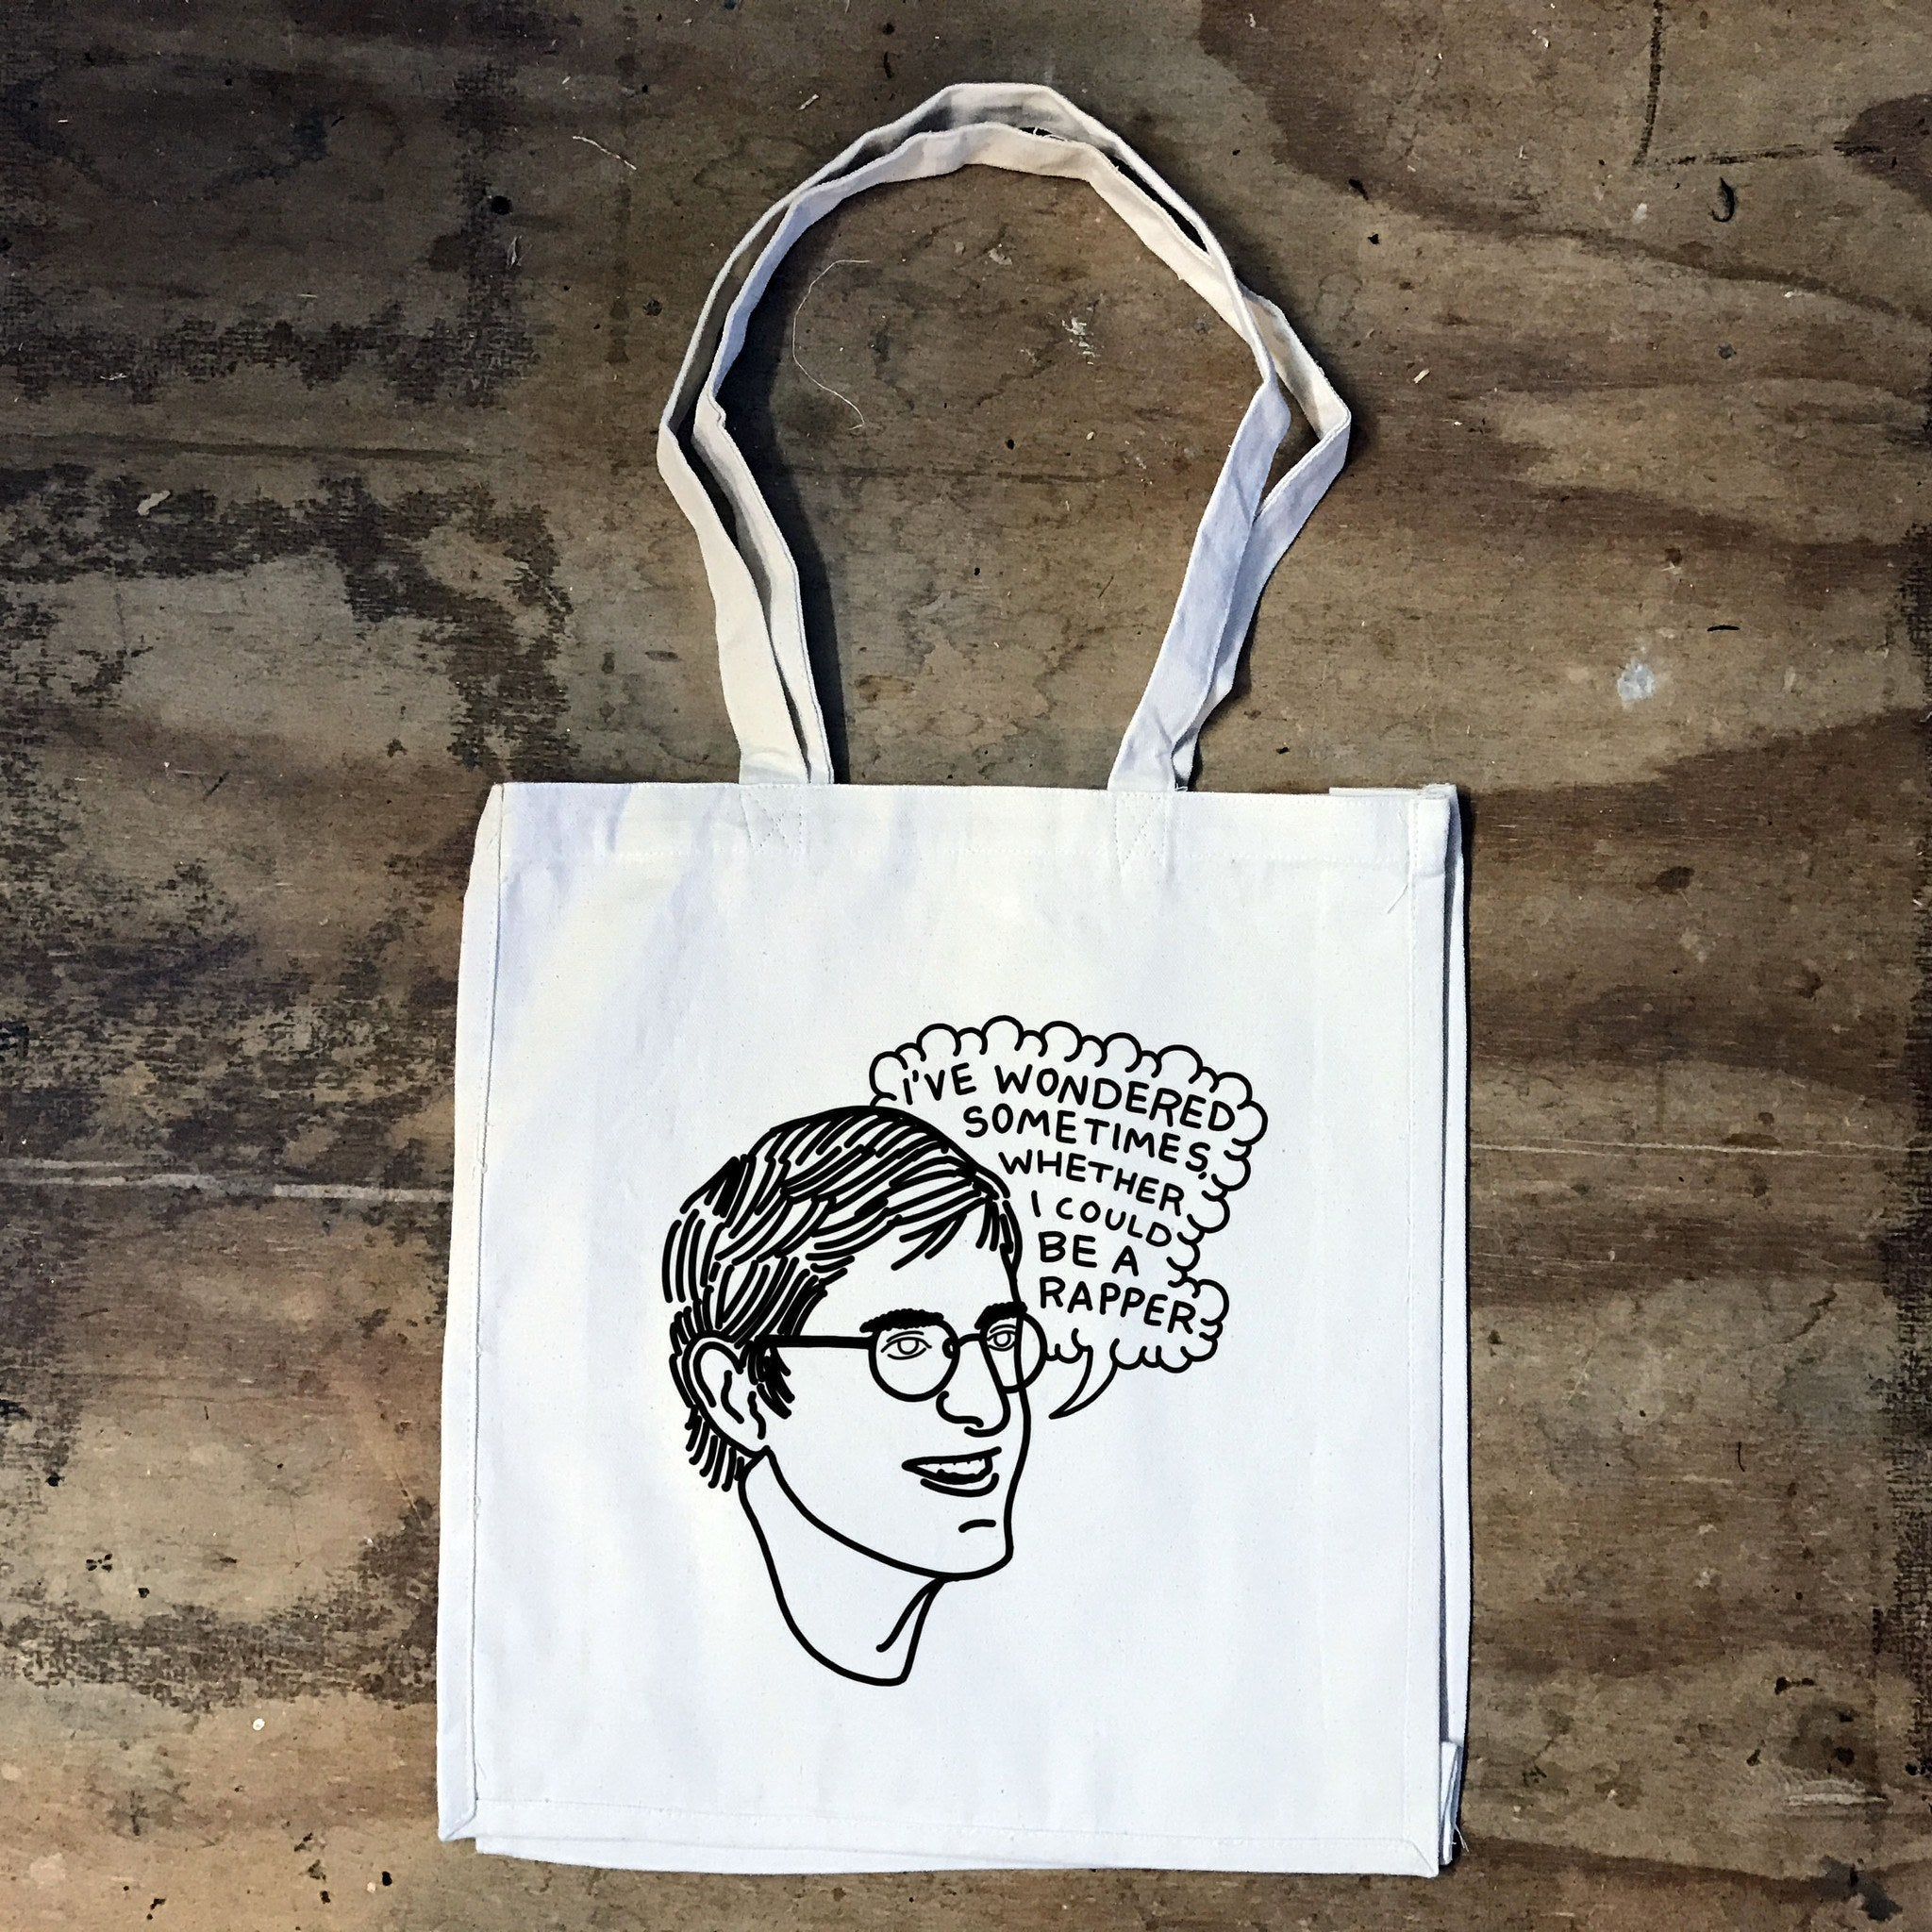 Louis Theroux - I wondered sometimes - Tote bag - Jiggle Apparel